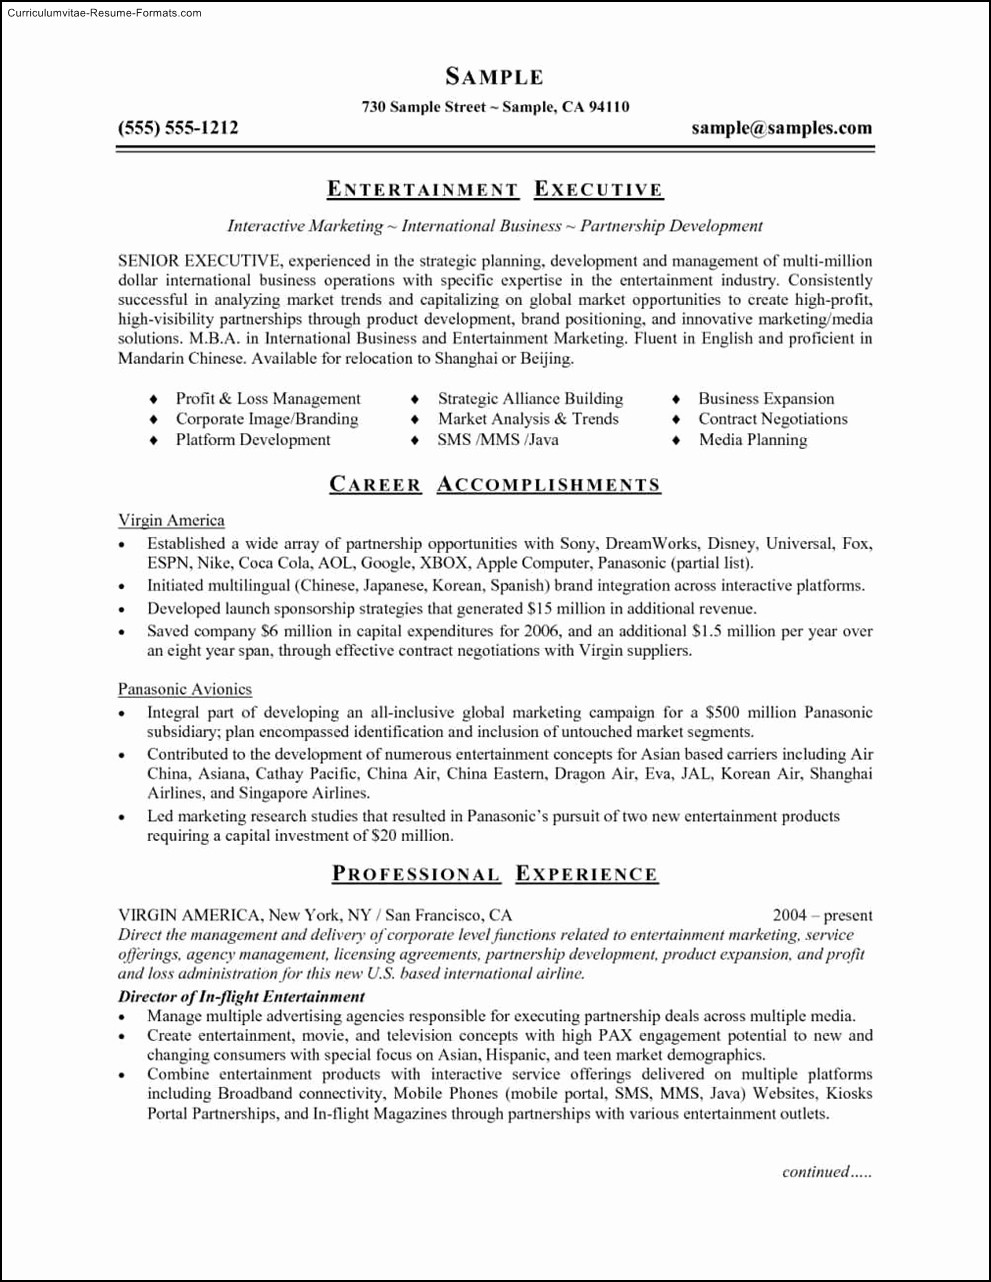 Free Resume Template Download Word Unique Microsoft Word 2003 Resume Template Free Download Free